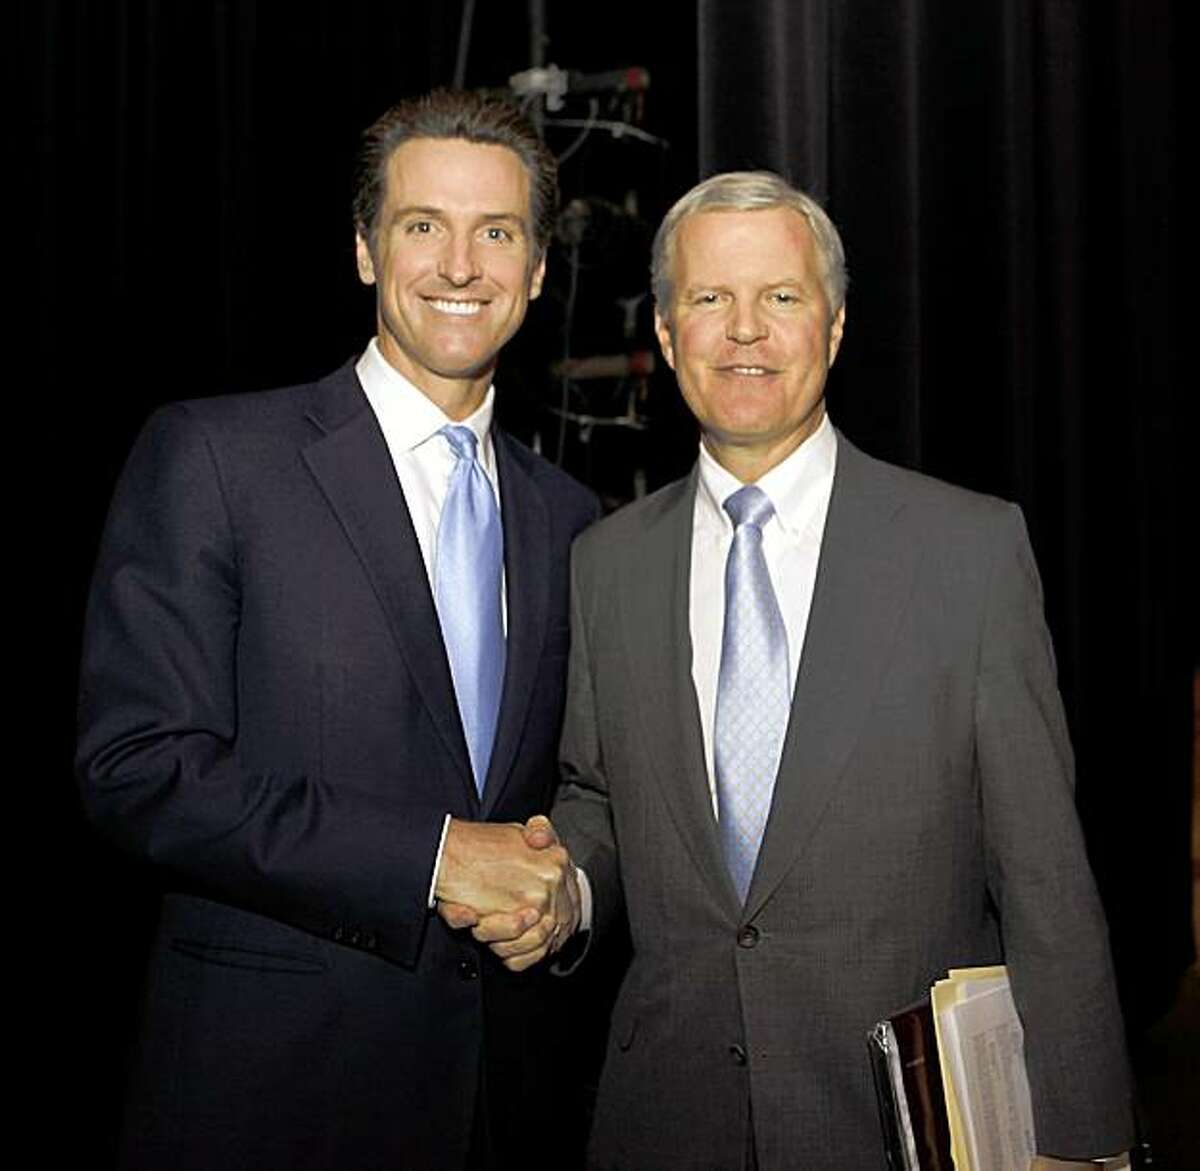 California Finance Director Tom Campbell, right, who is running for Governor, shake hands with San Francisco Mayor Gavin Newsom, left, who is also running for Governor, backstage between panel discussions at Santa Clara University in Santa Clara, Calif., Wednesday, Sept. 16, 2009. (AP Photo/Paul Sakuma)